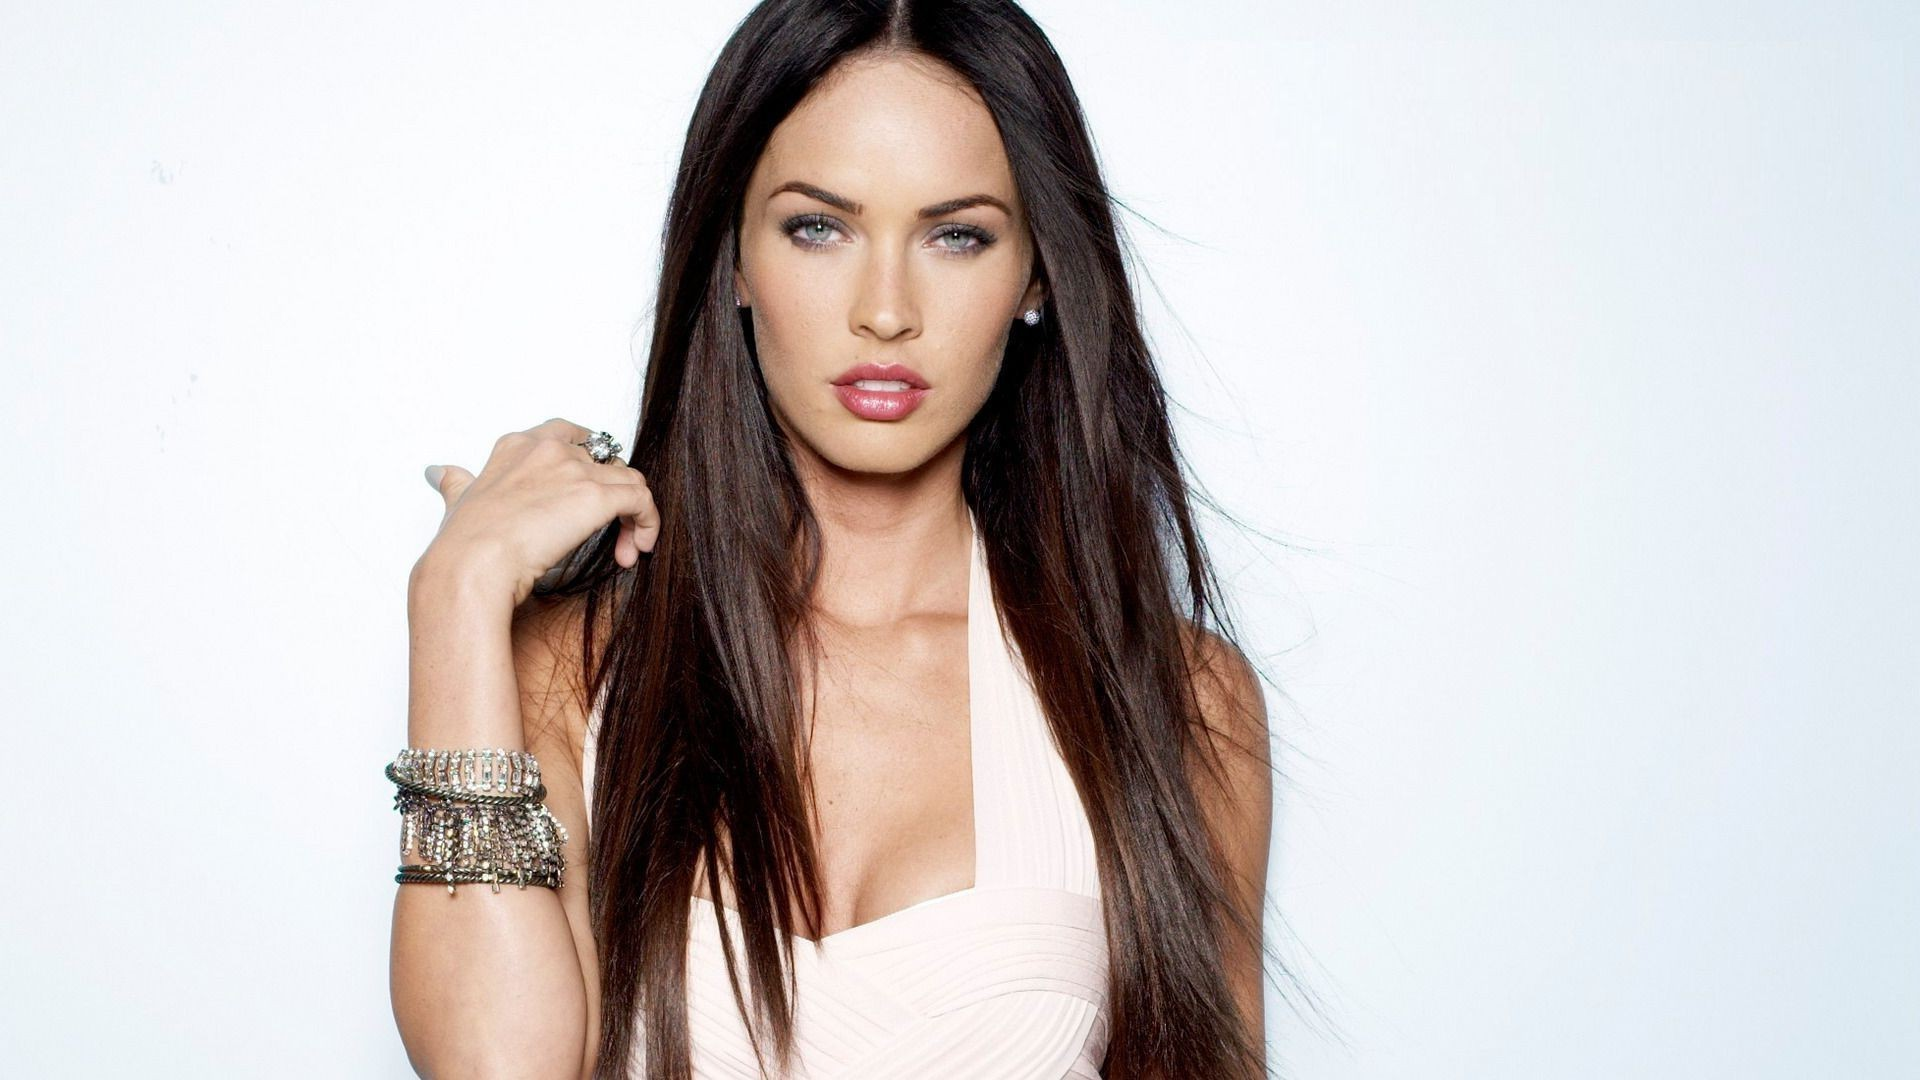 Megan Fox Free HD Wallpapers Images